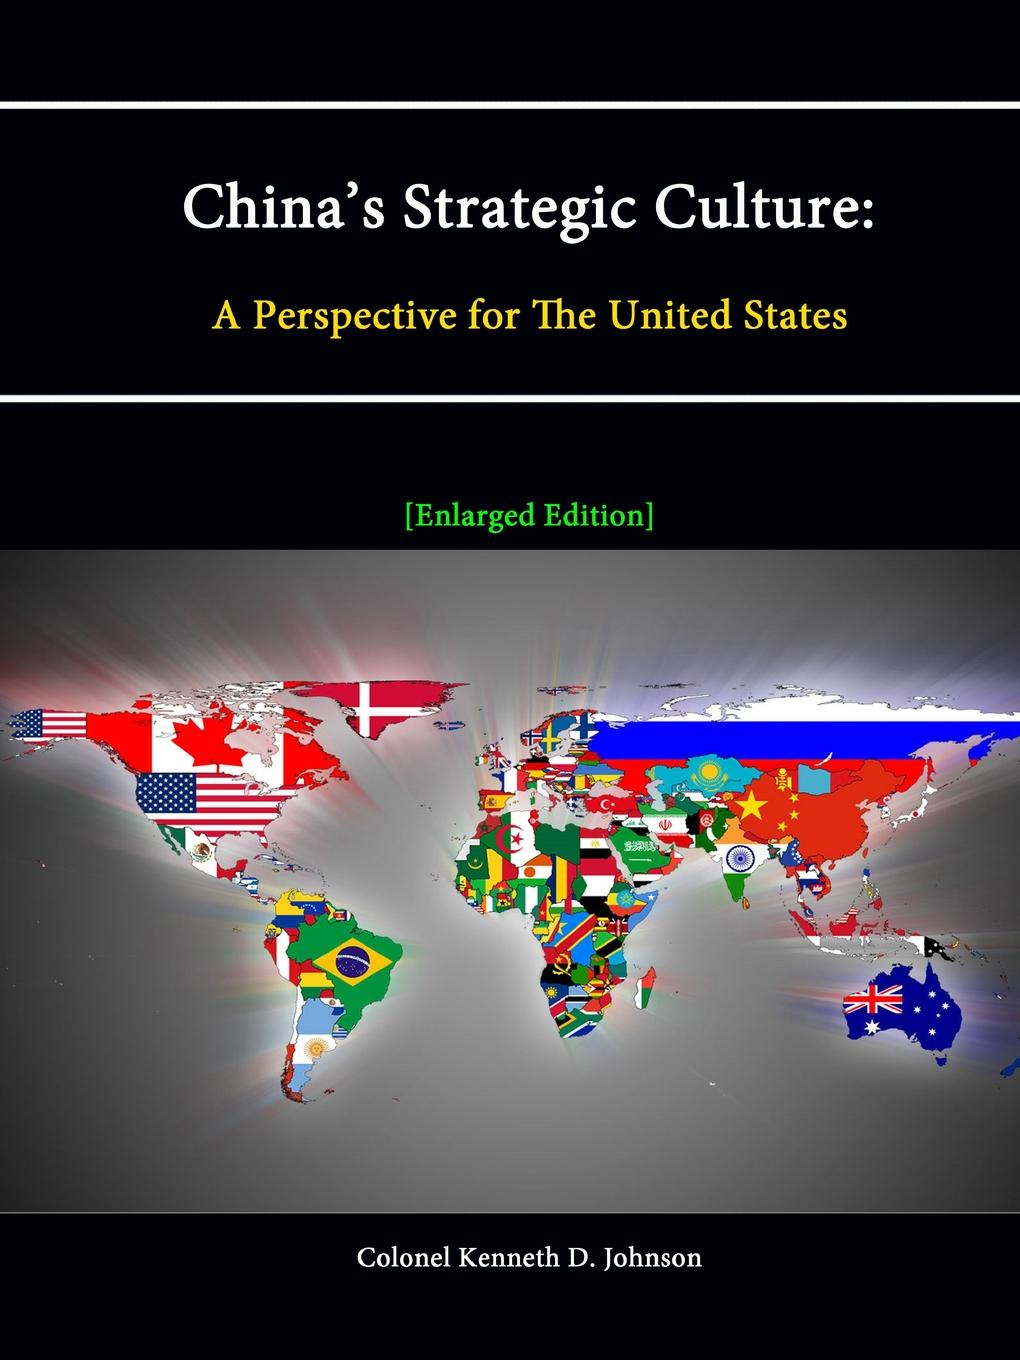 Colonel Kenneth D. Johnson, Strategic Studies Institute China.s Strategic Culture. A Perspective for the United States toshi yoshihara strategic studies institute chinese information warfare a phantom menace or emerging threat